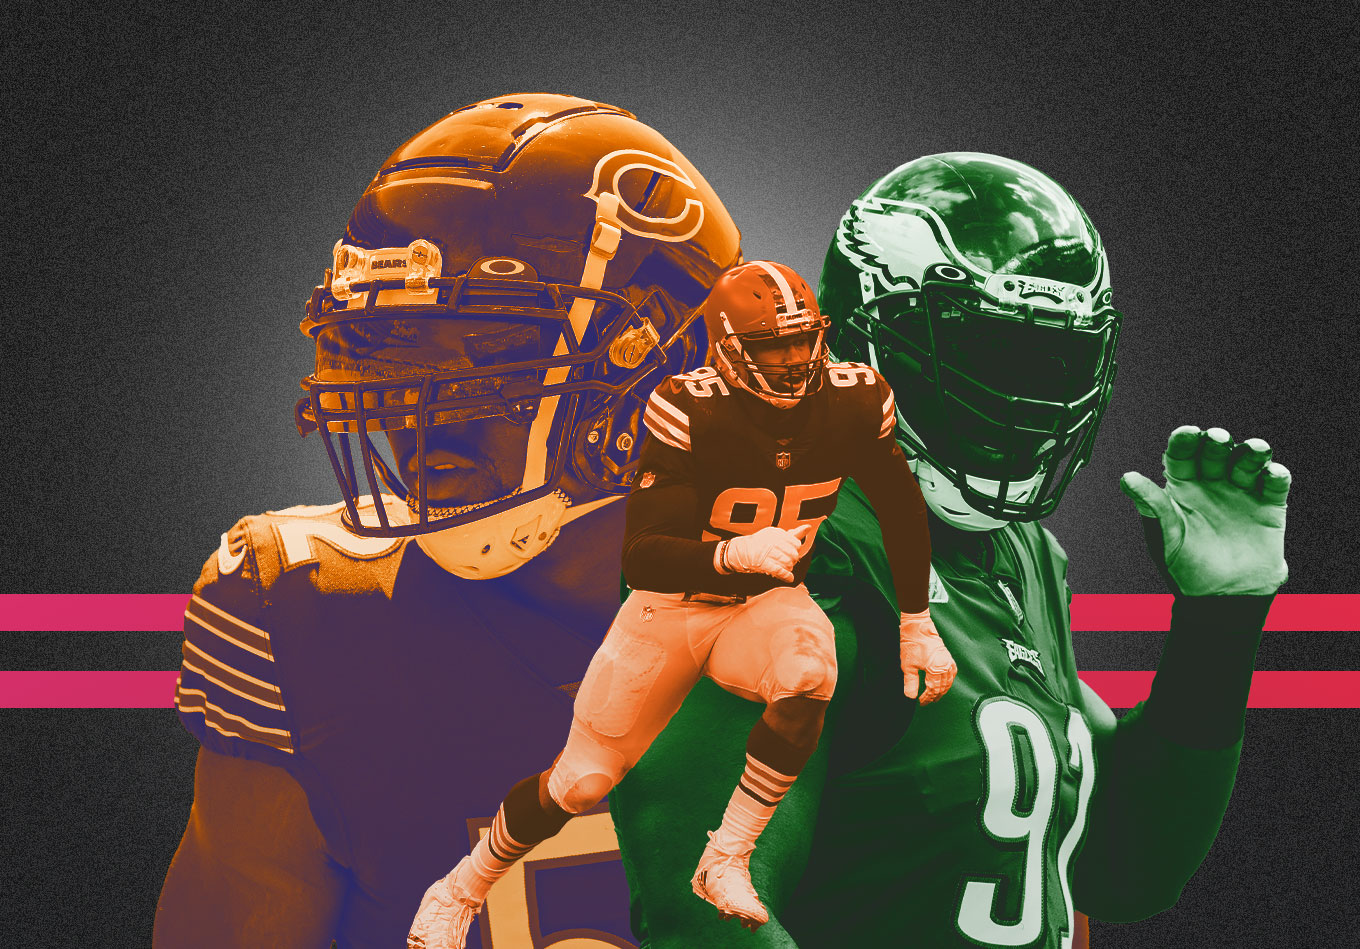 NFL Positional Rankings: The Best, Worst, and Most Improved Defensive Fronts